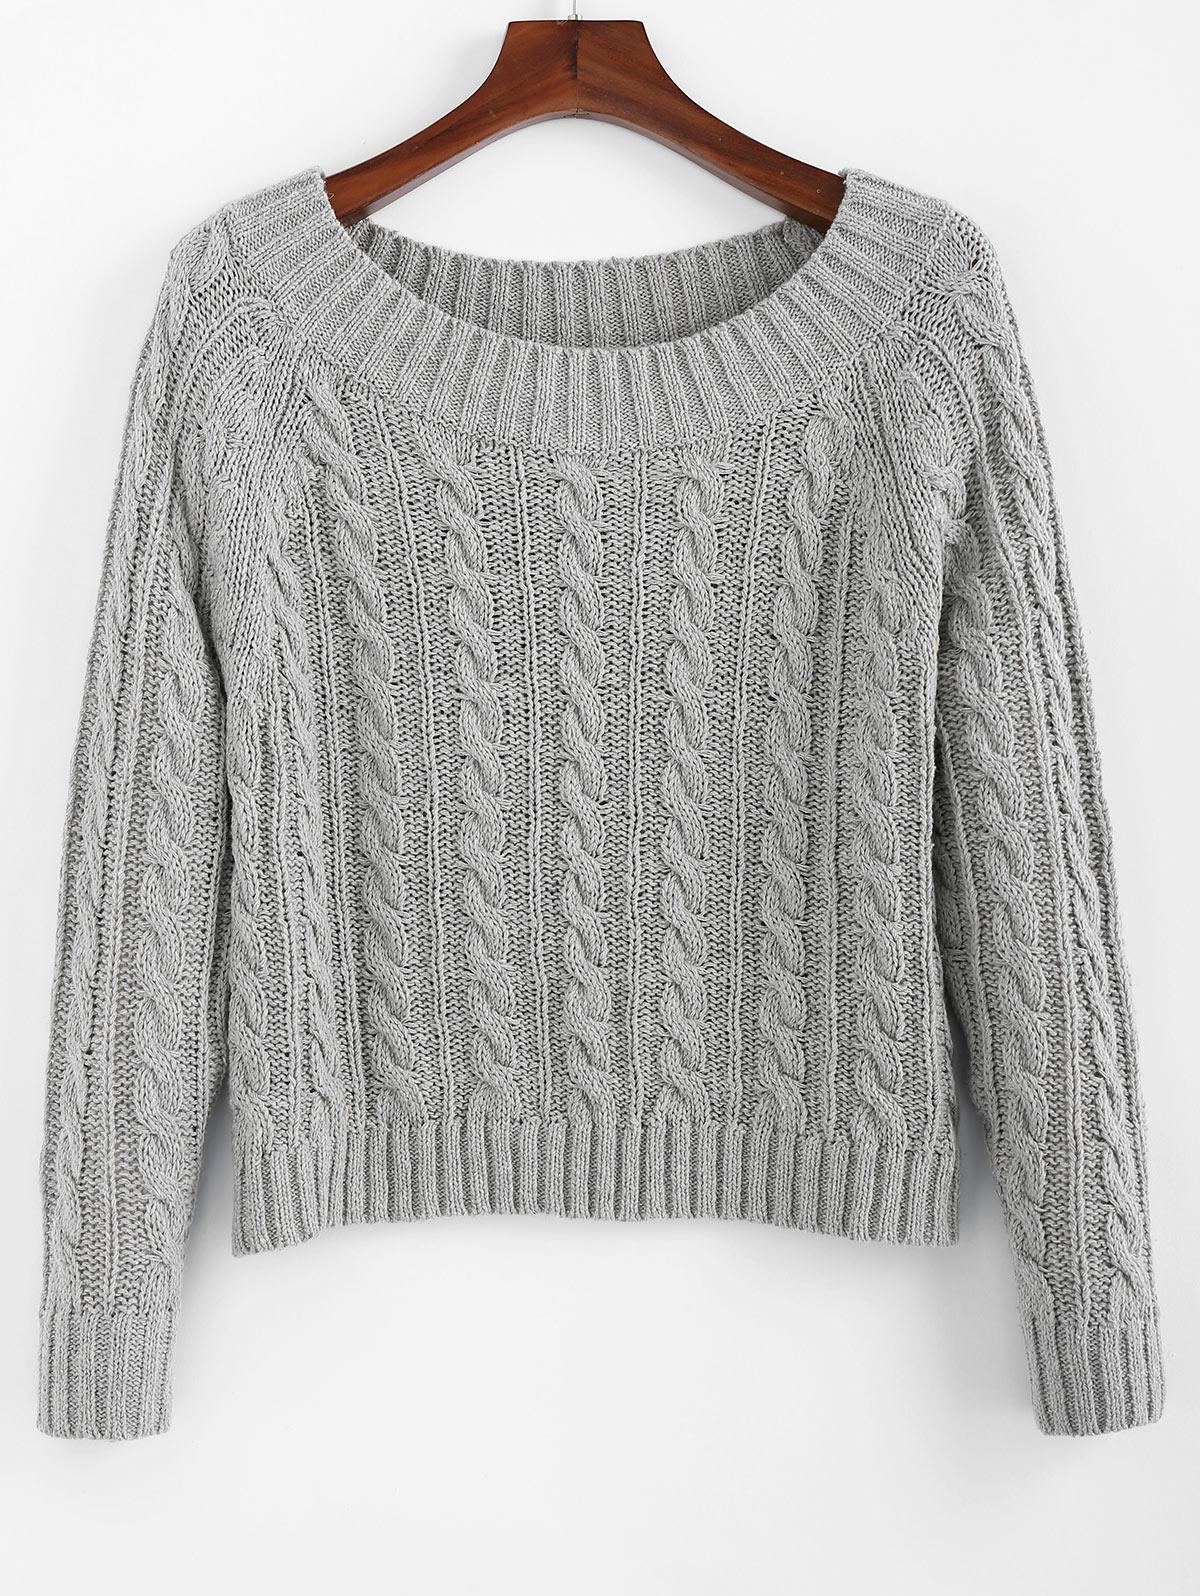 ZAFUL Cable Knit Off Shoulder Plain Sweater фото